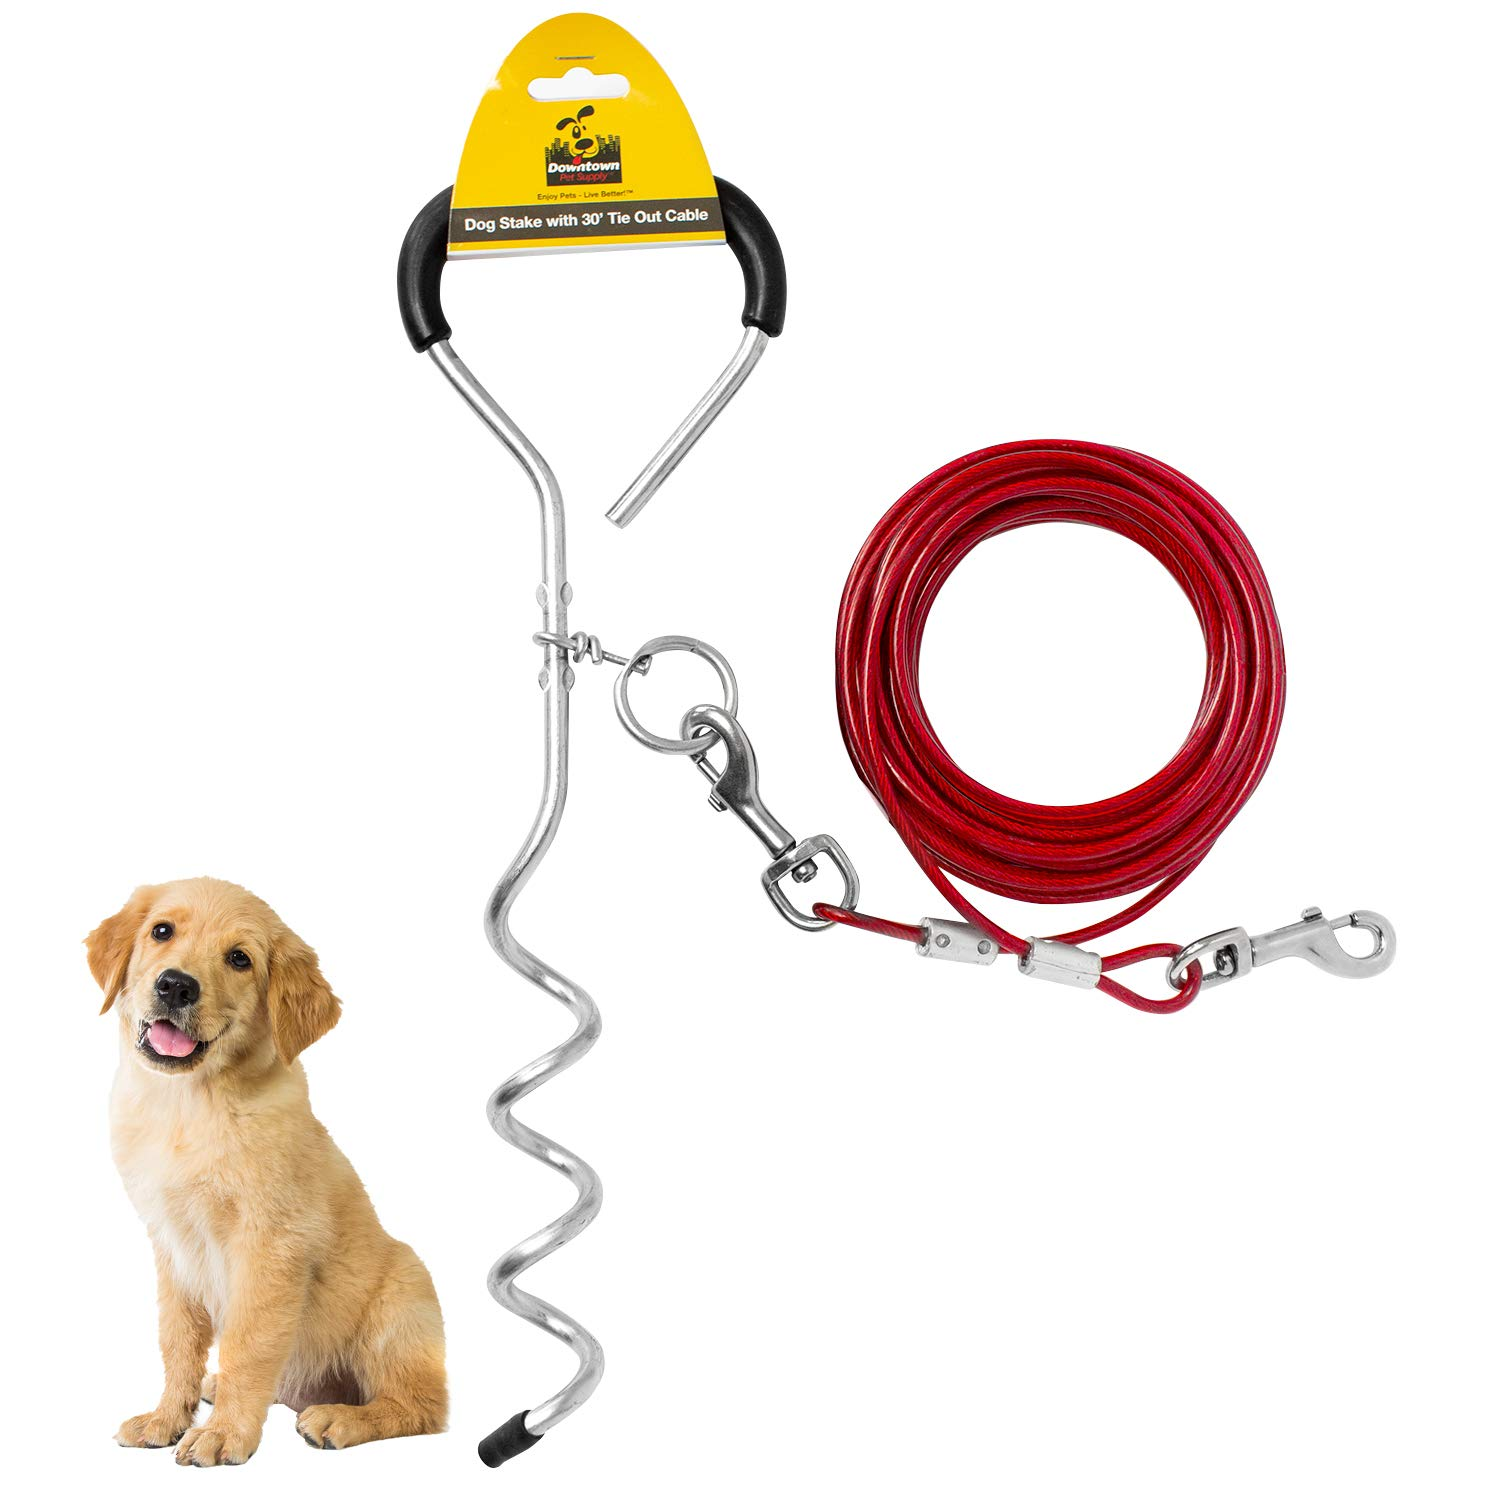 Downtown Pet Supply New Premium Steel Spiral Tie Out Stake with 20 Foot Cable by Downtown Pet Supply